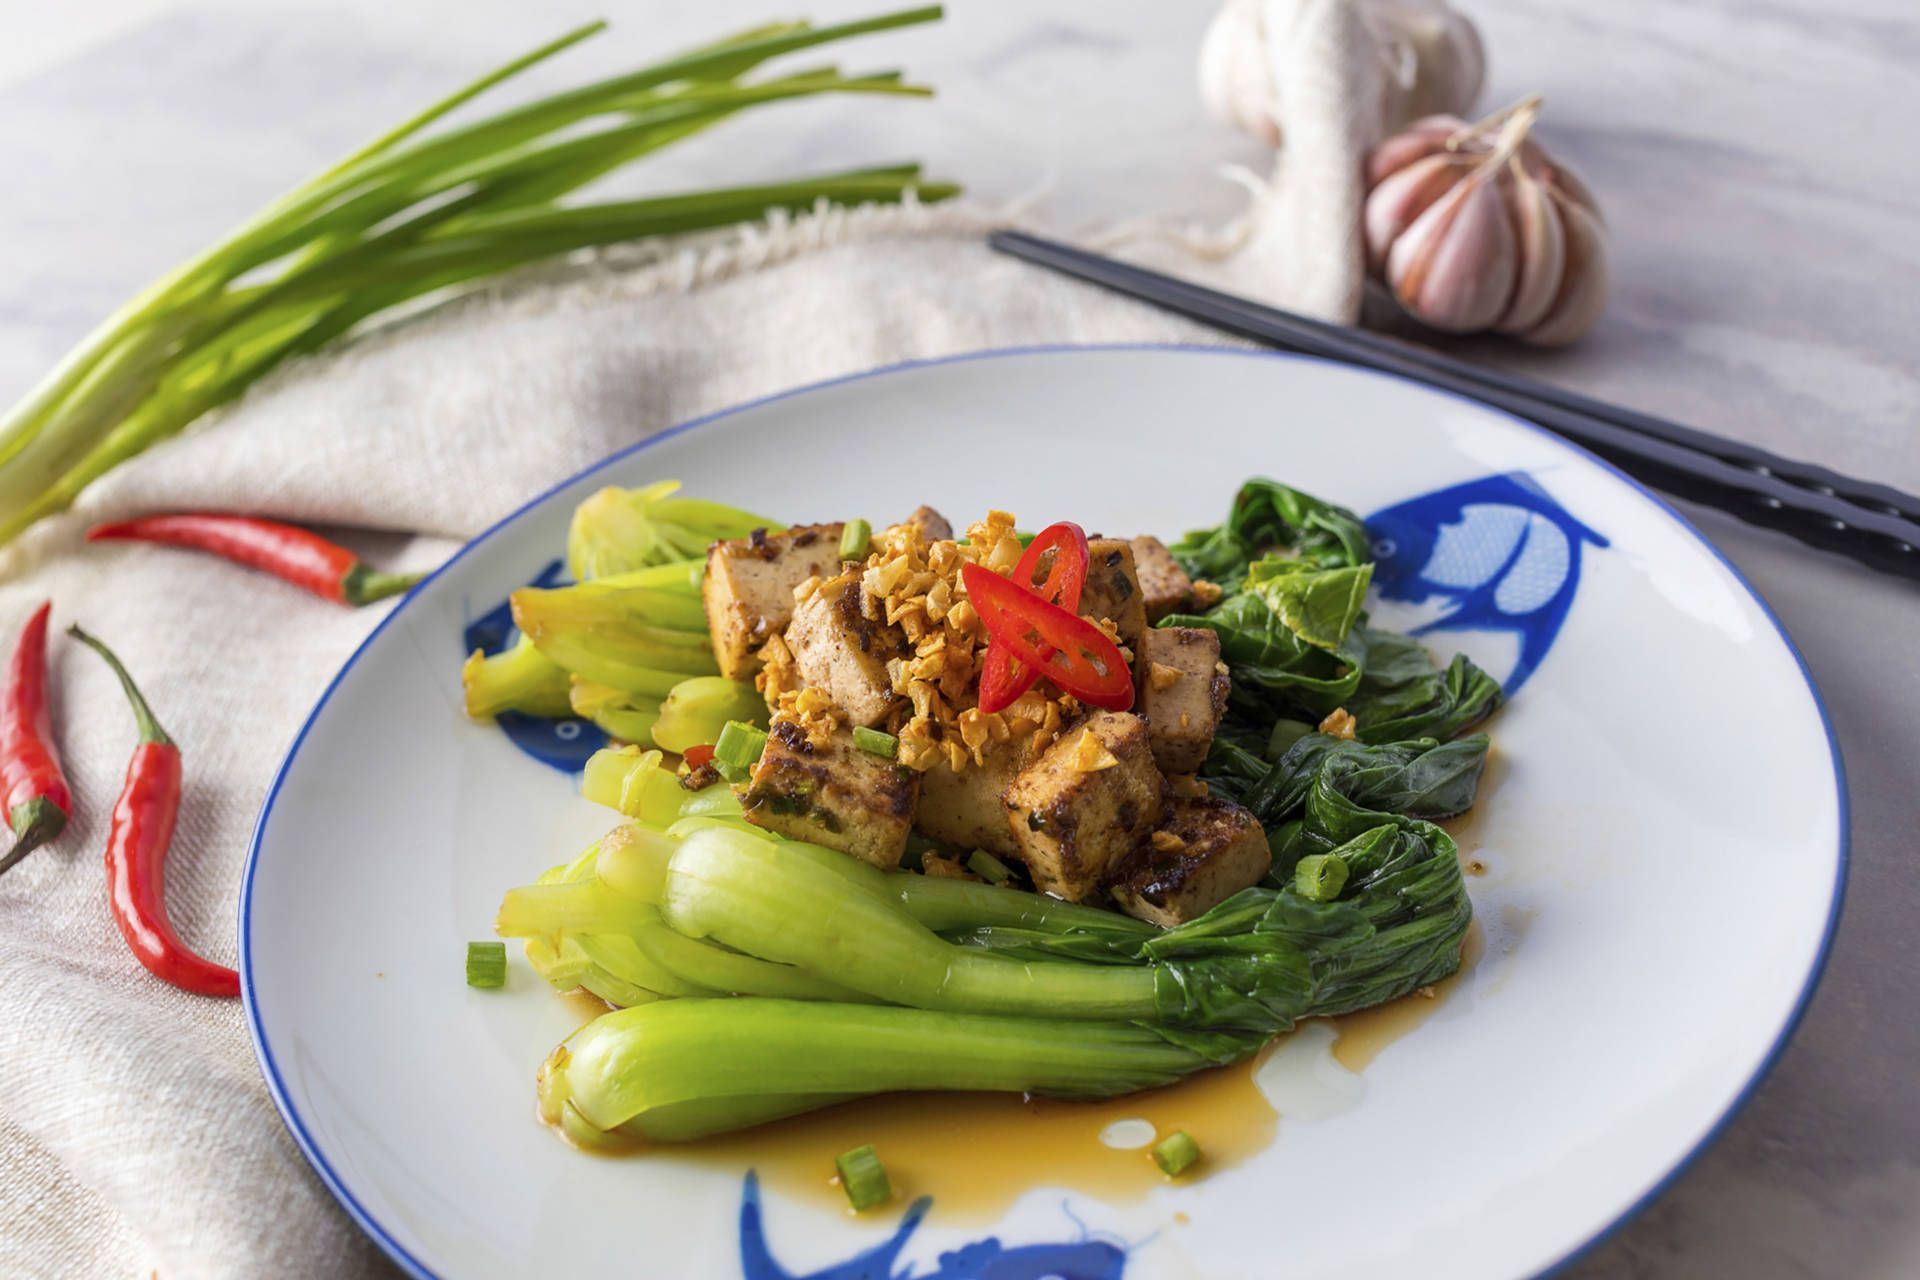 Asian Food Network Authentic Asian Recipes Recipe Asian Food Channel Authentic Asian Recipes Asian Recipes